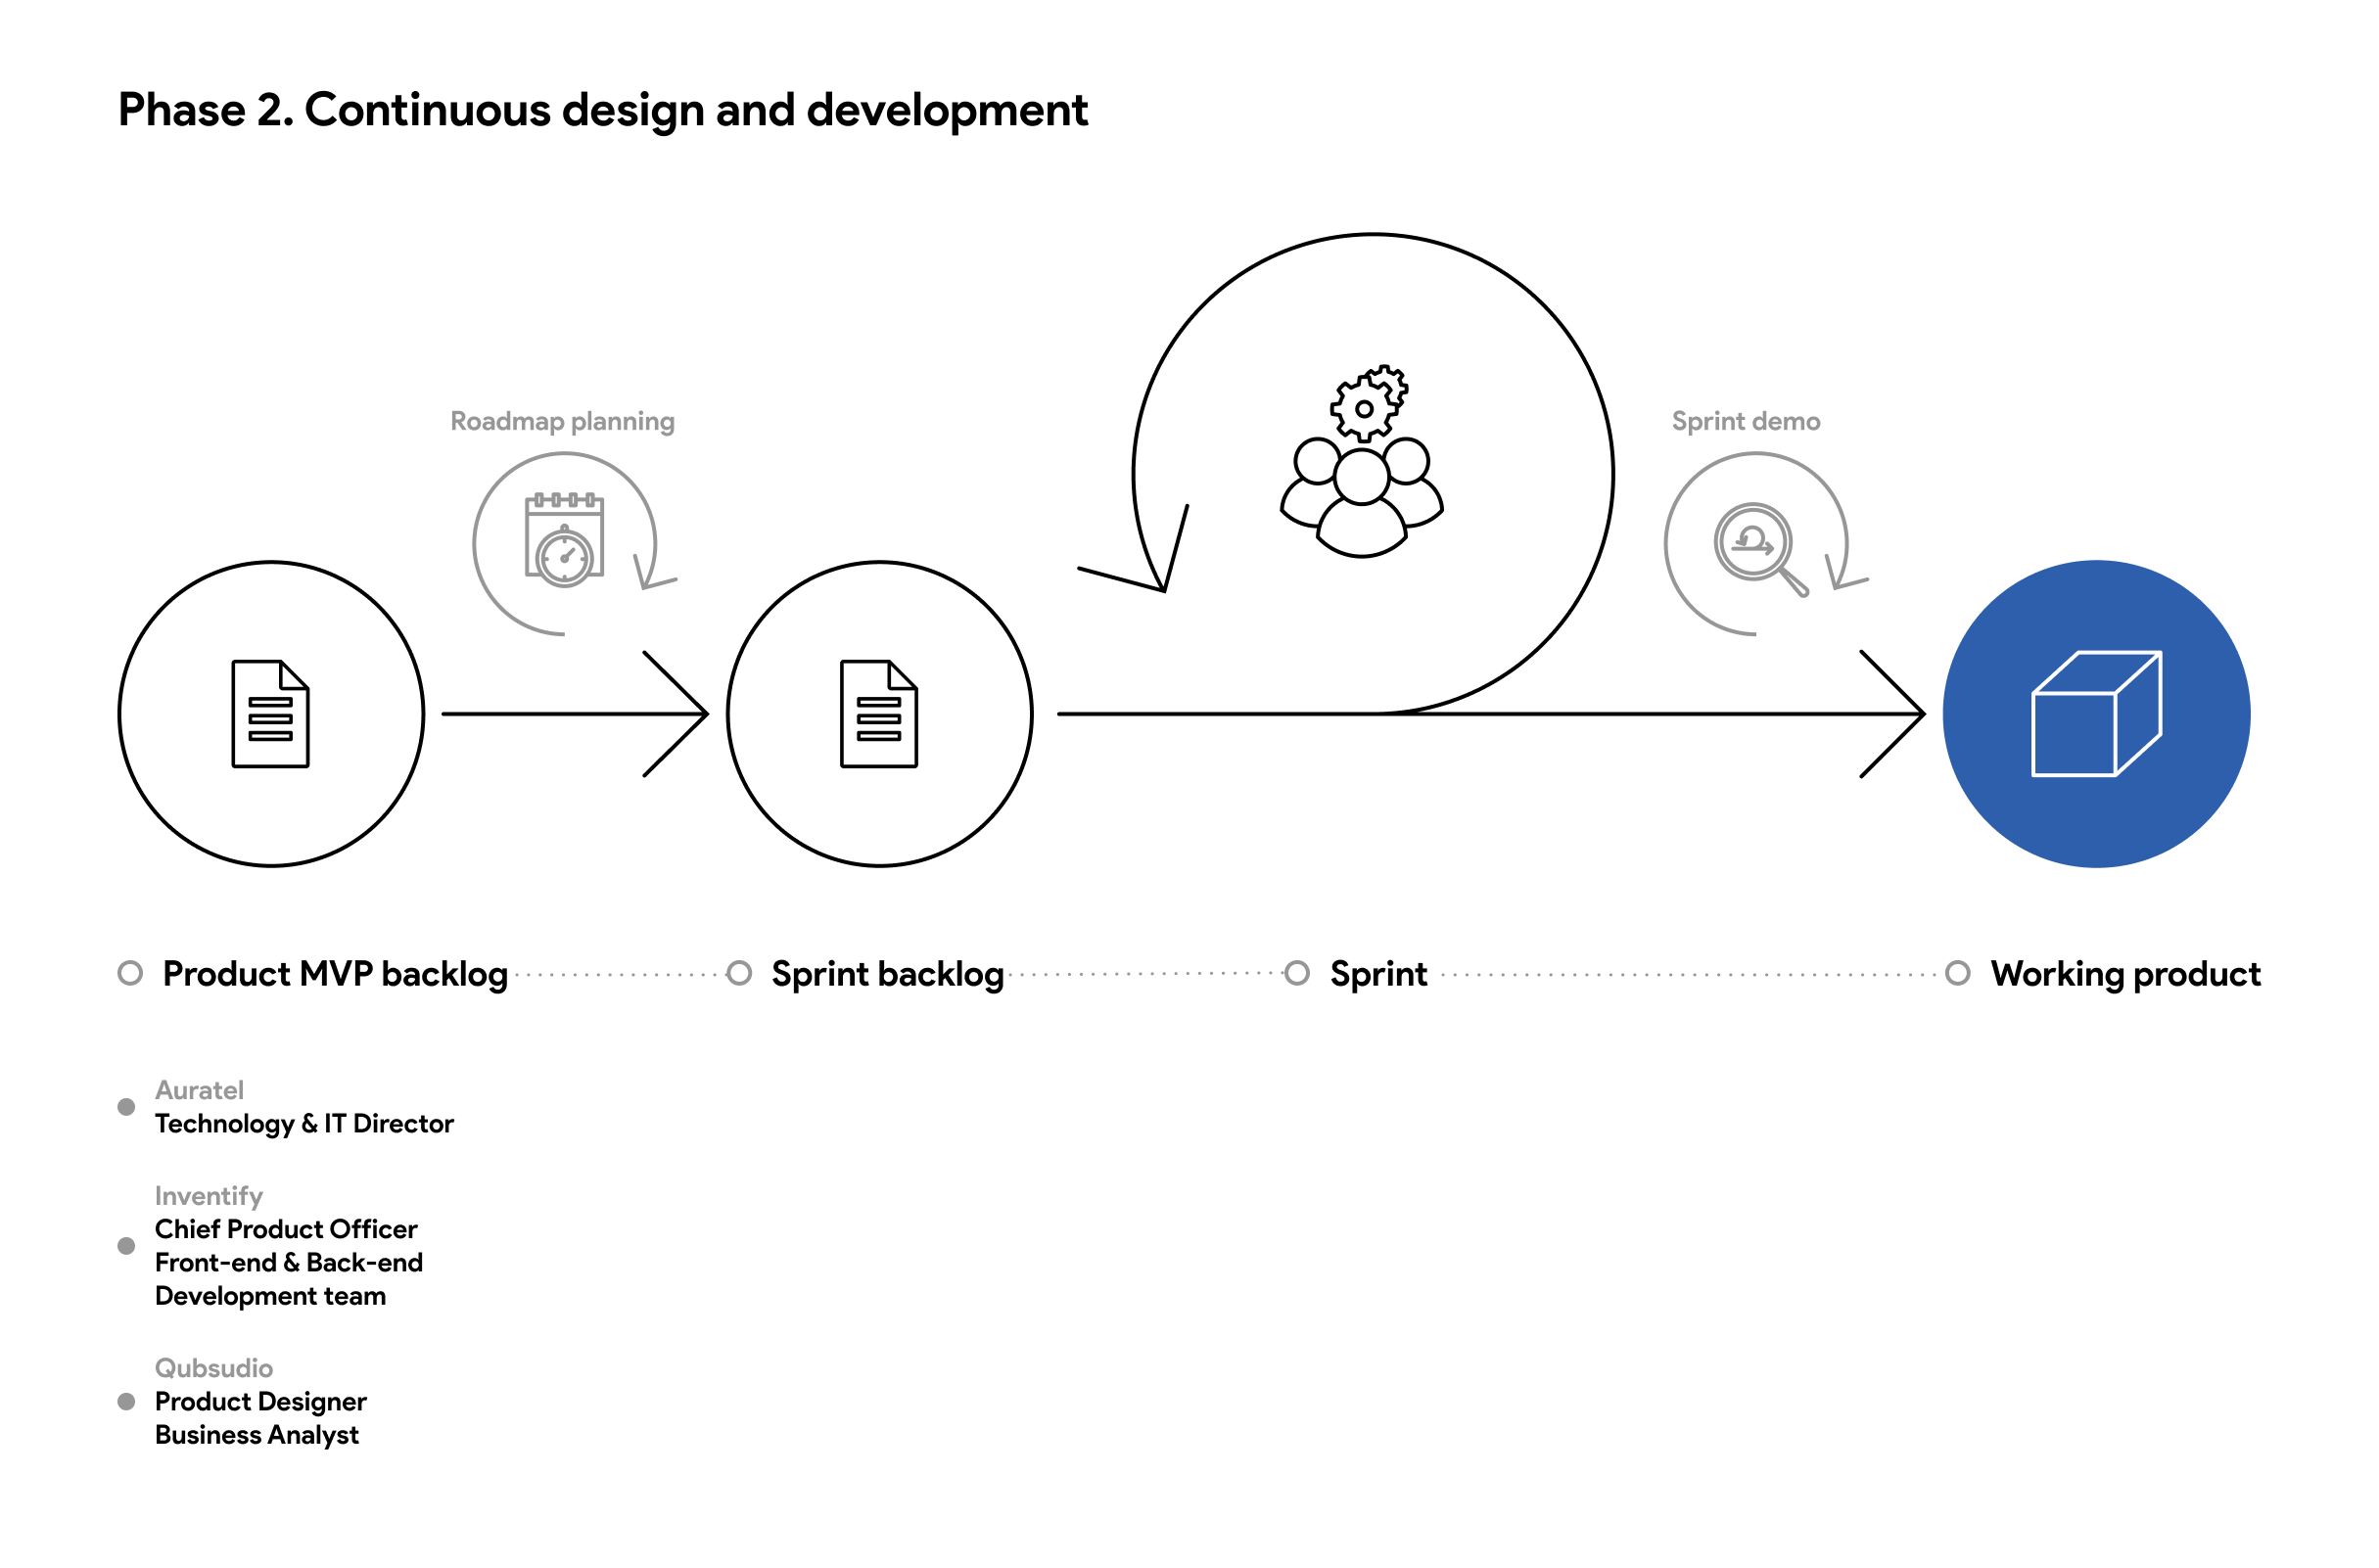 Phase 2. Continuous design and development (1)